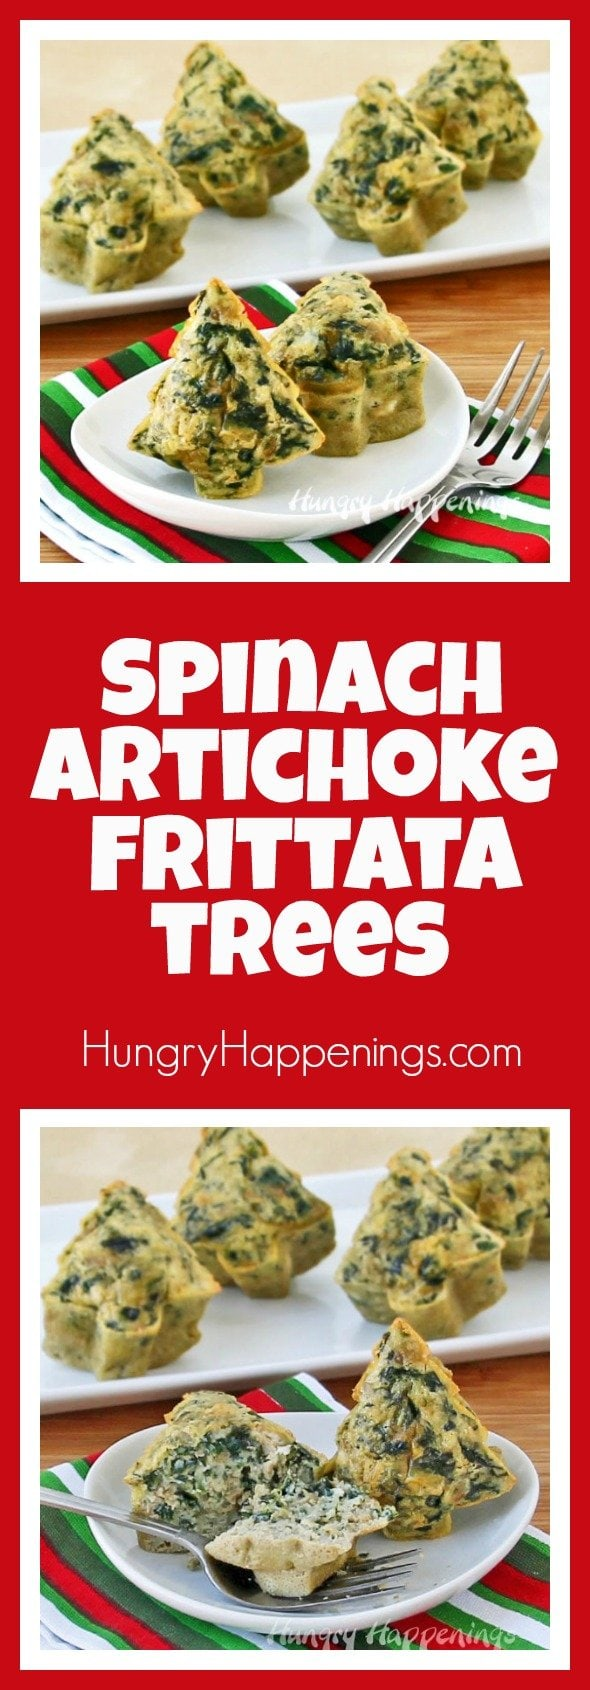 Most Christmas posts tend to be involving some kind of desserts but I wanted to involve a delicious appetizer instead! Try these Spinach Artichoke Frittata Trees and bite into some salty, gooey goodness.